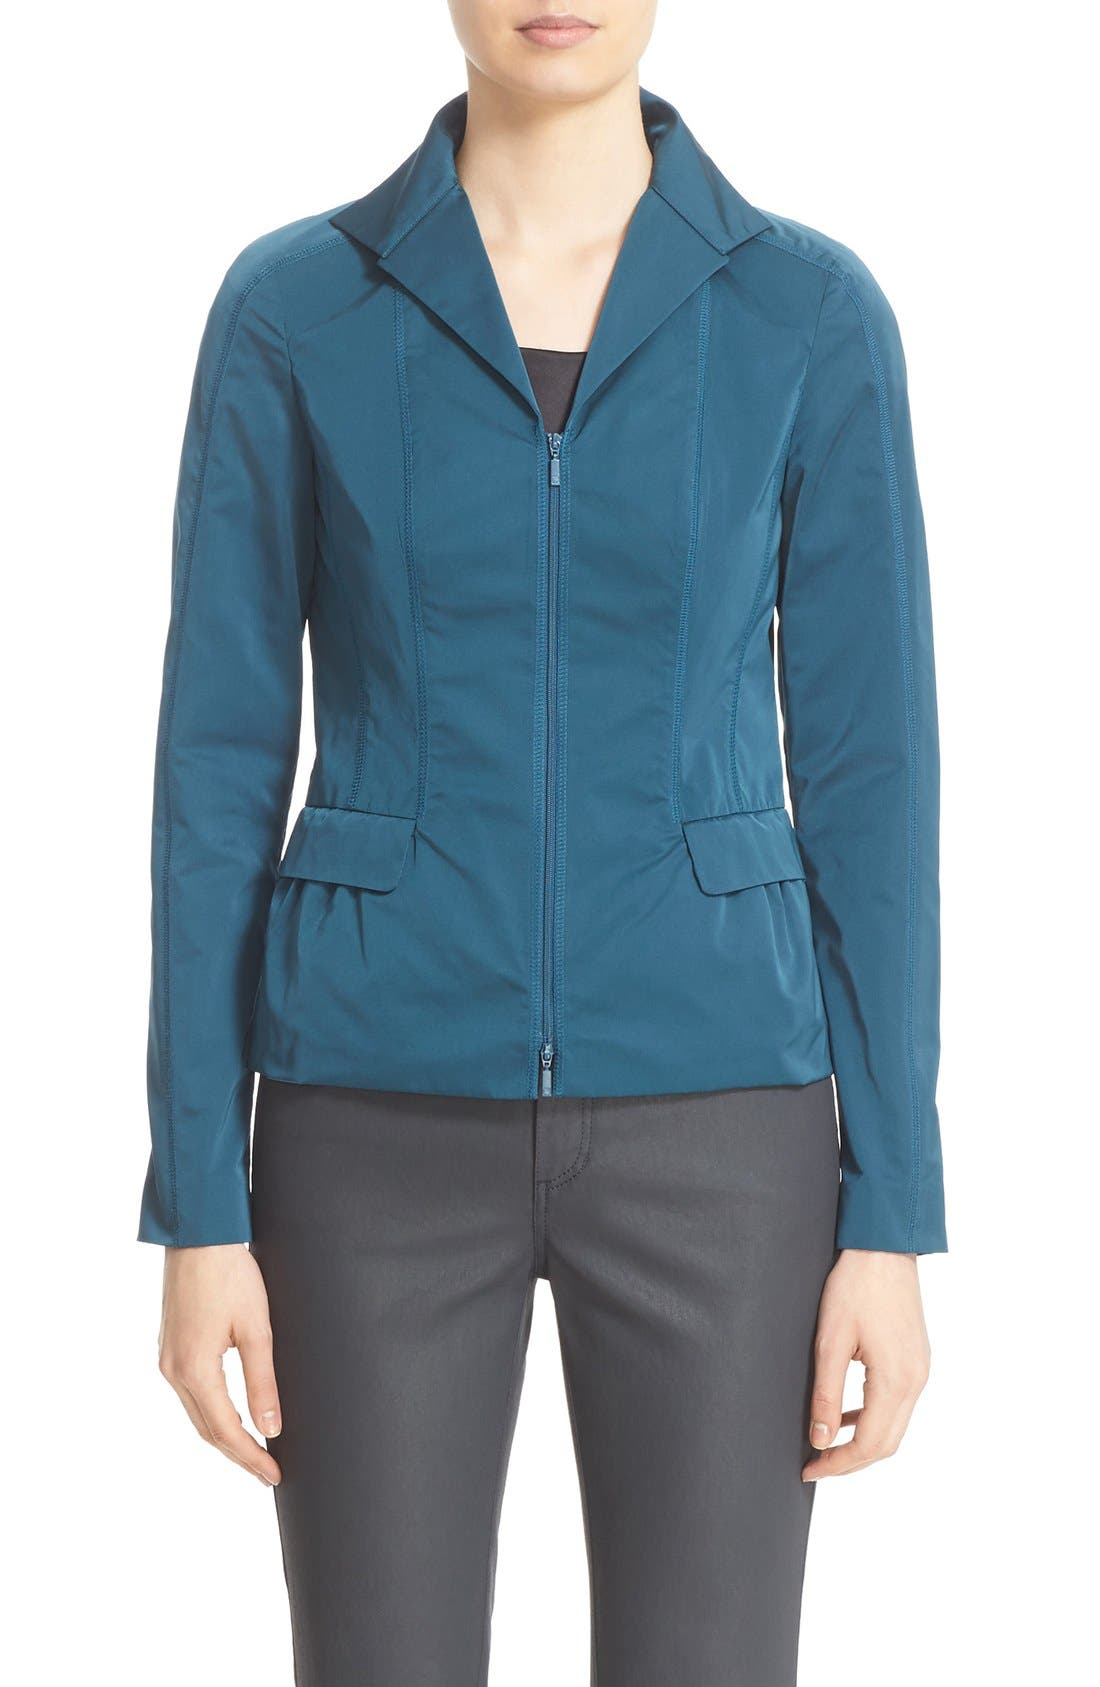 Alternate Image 1 Selected - Lafayette 148 New York 'Nala' Zip Front Jacket